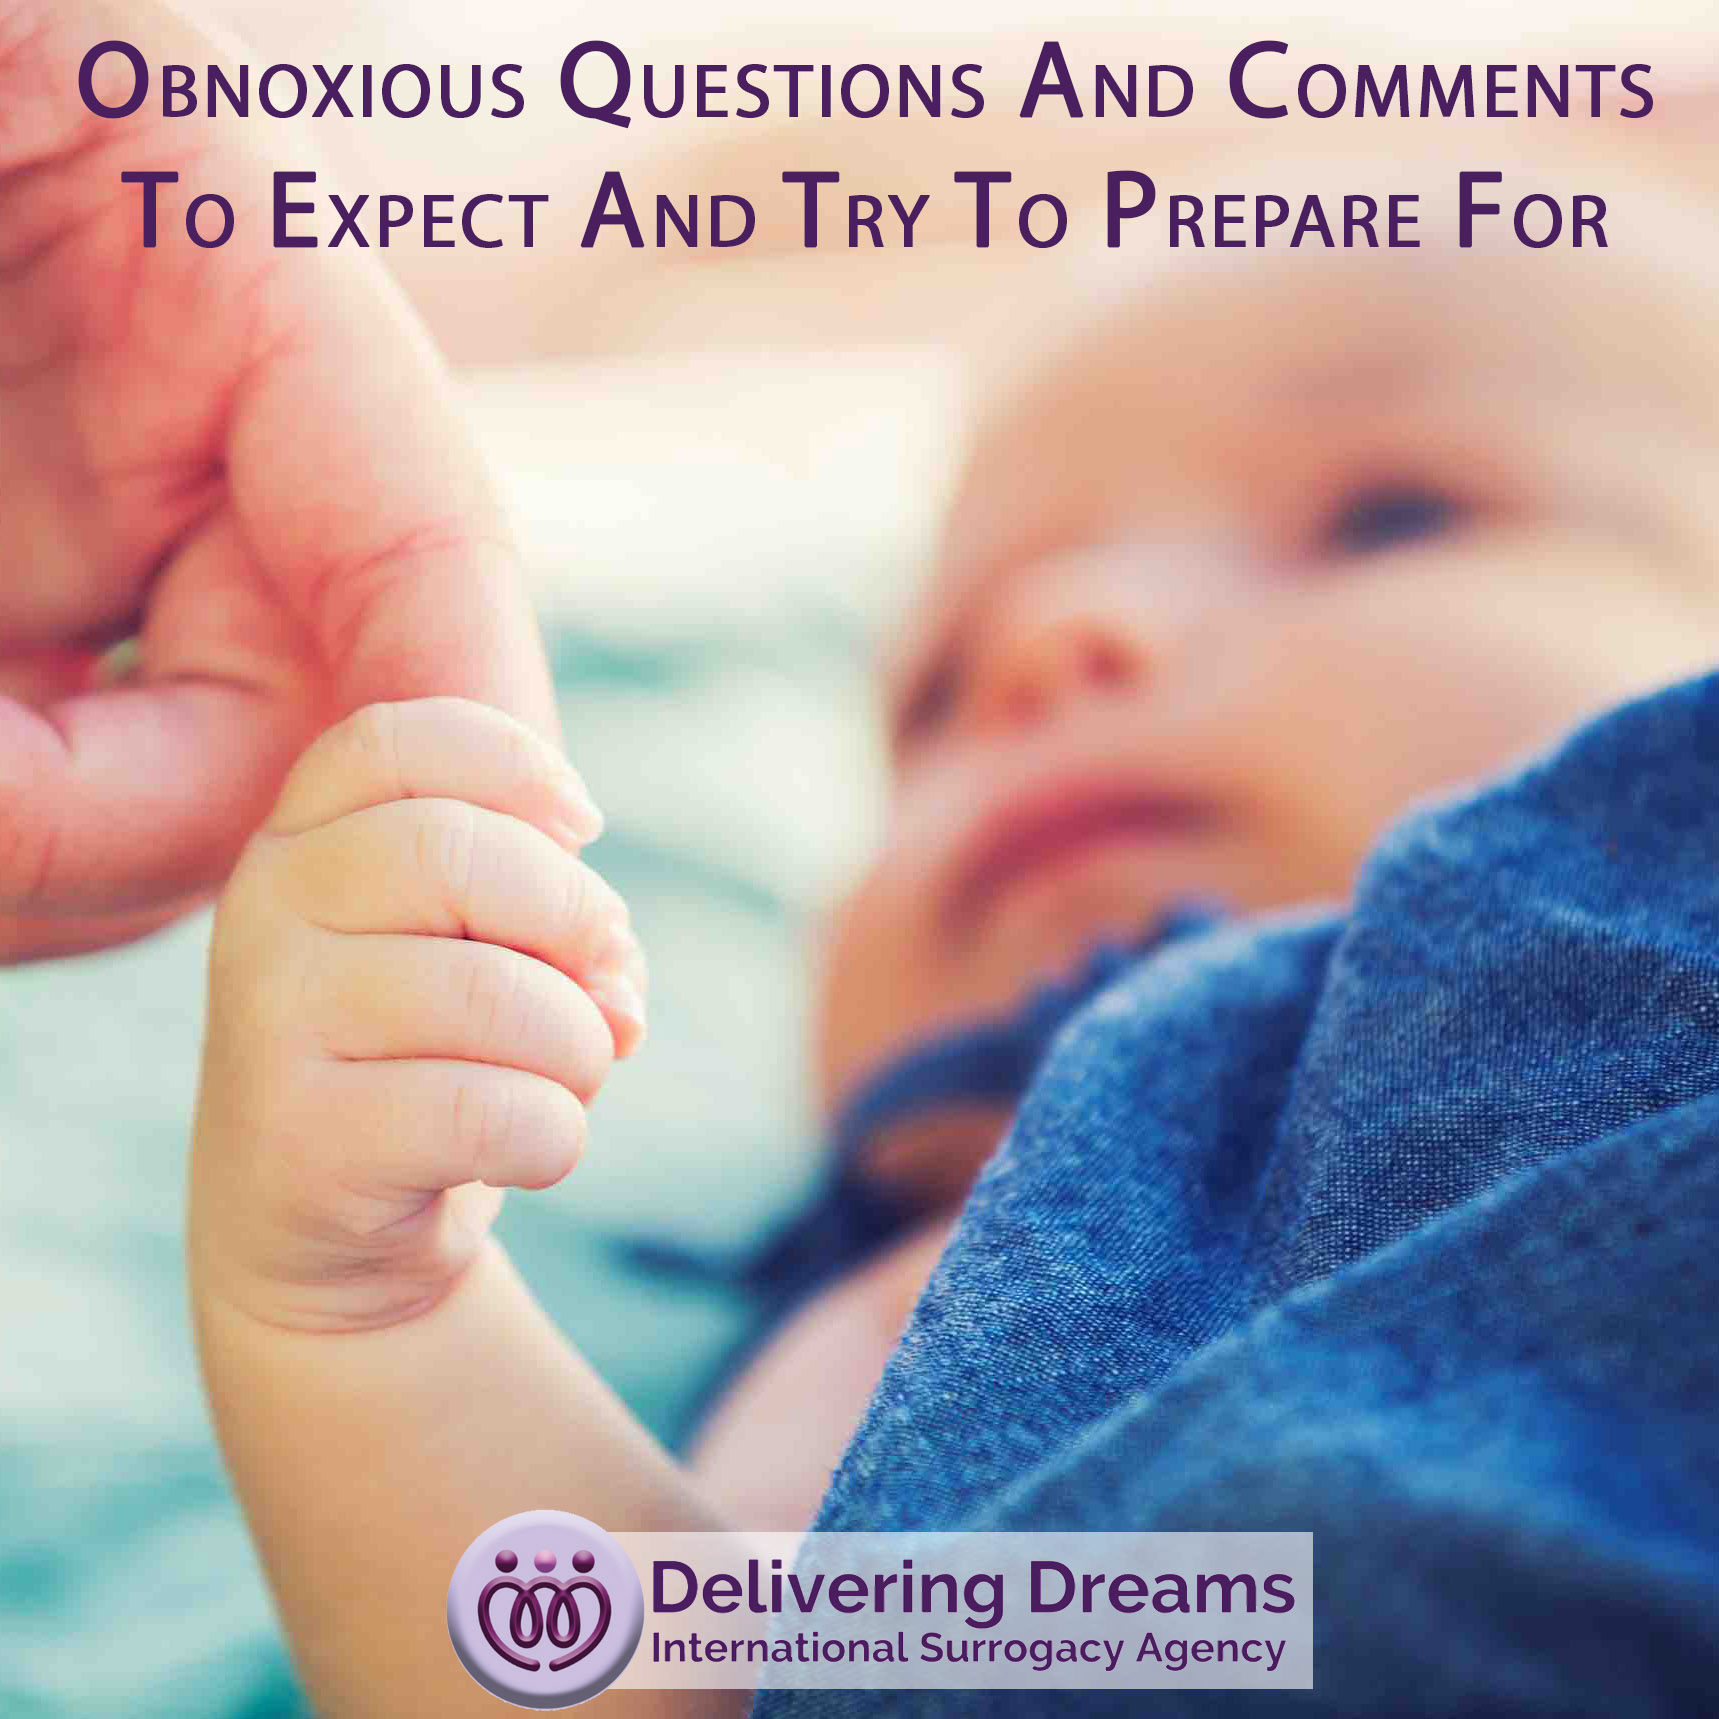 Ukrainian Surrogacy – Obnoxious Questions And Comments To Expect And Try To Prepare For